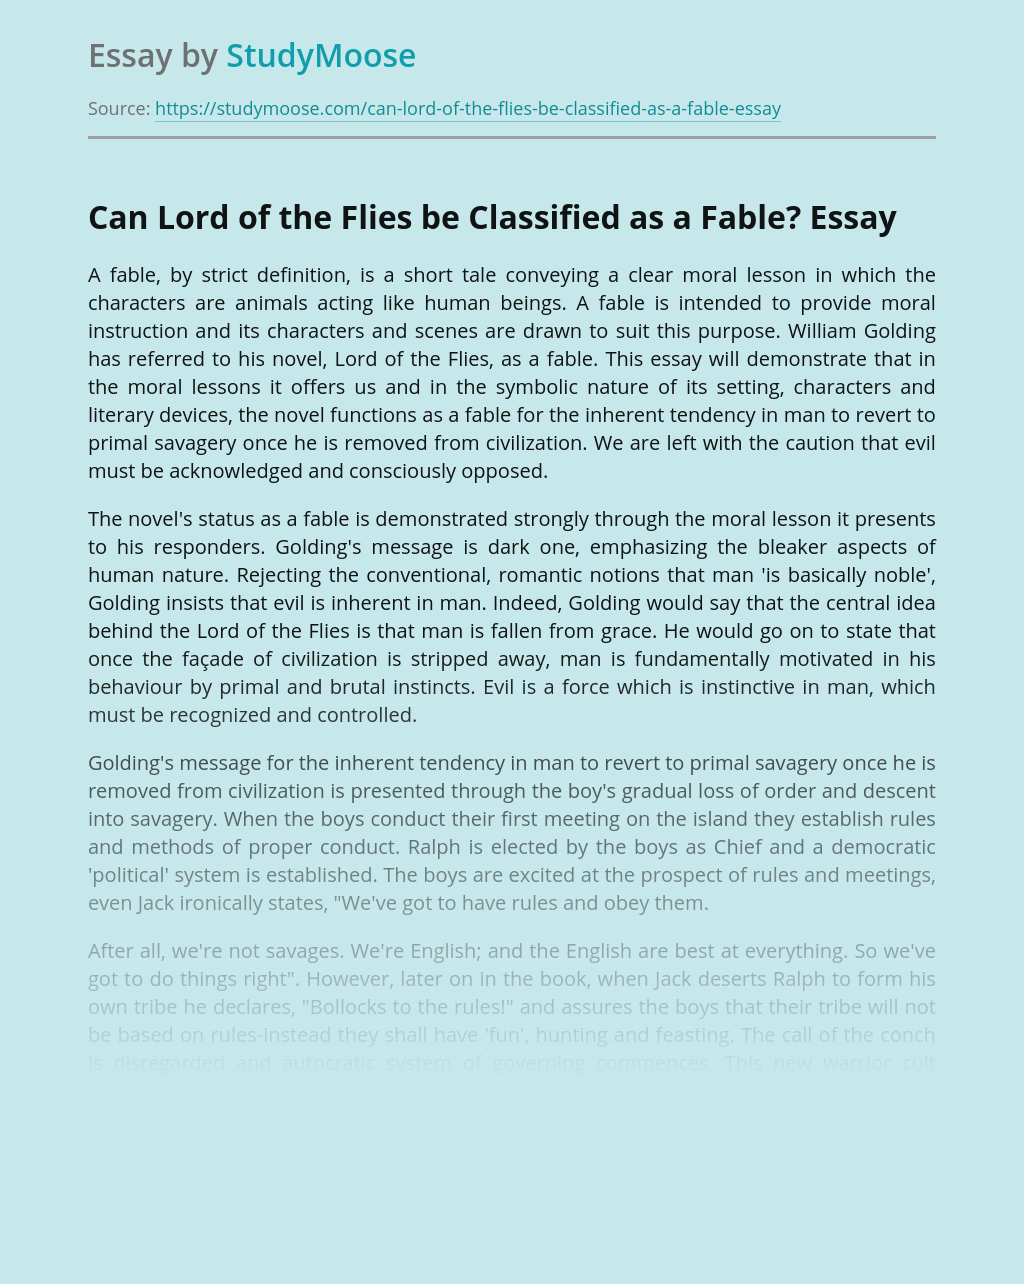 Can Lord of the Flies be Classified as a Fable?